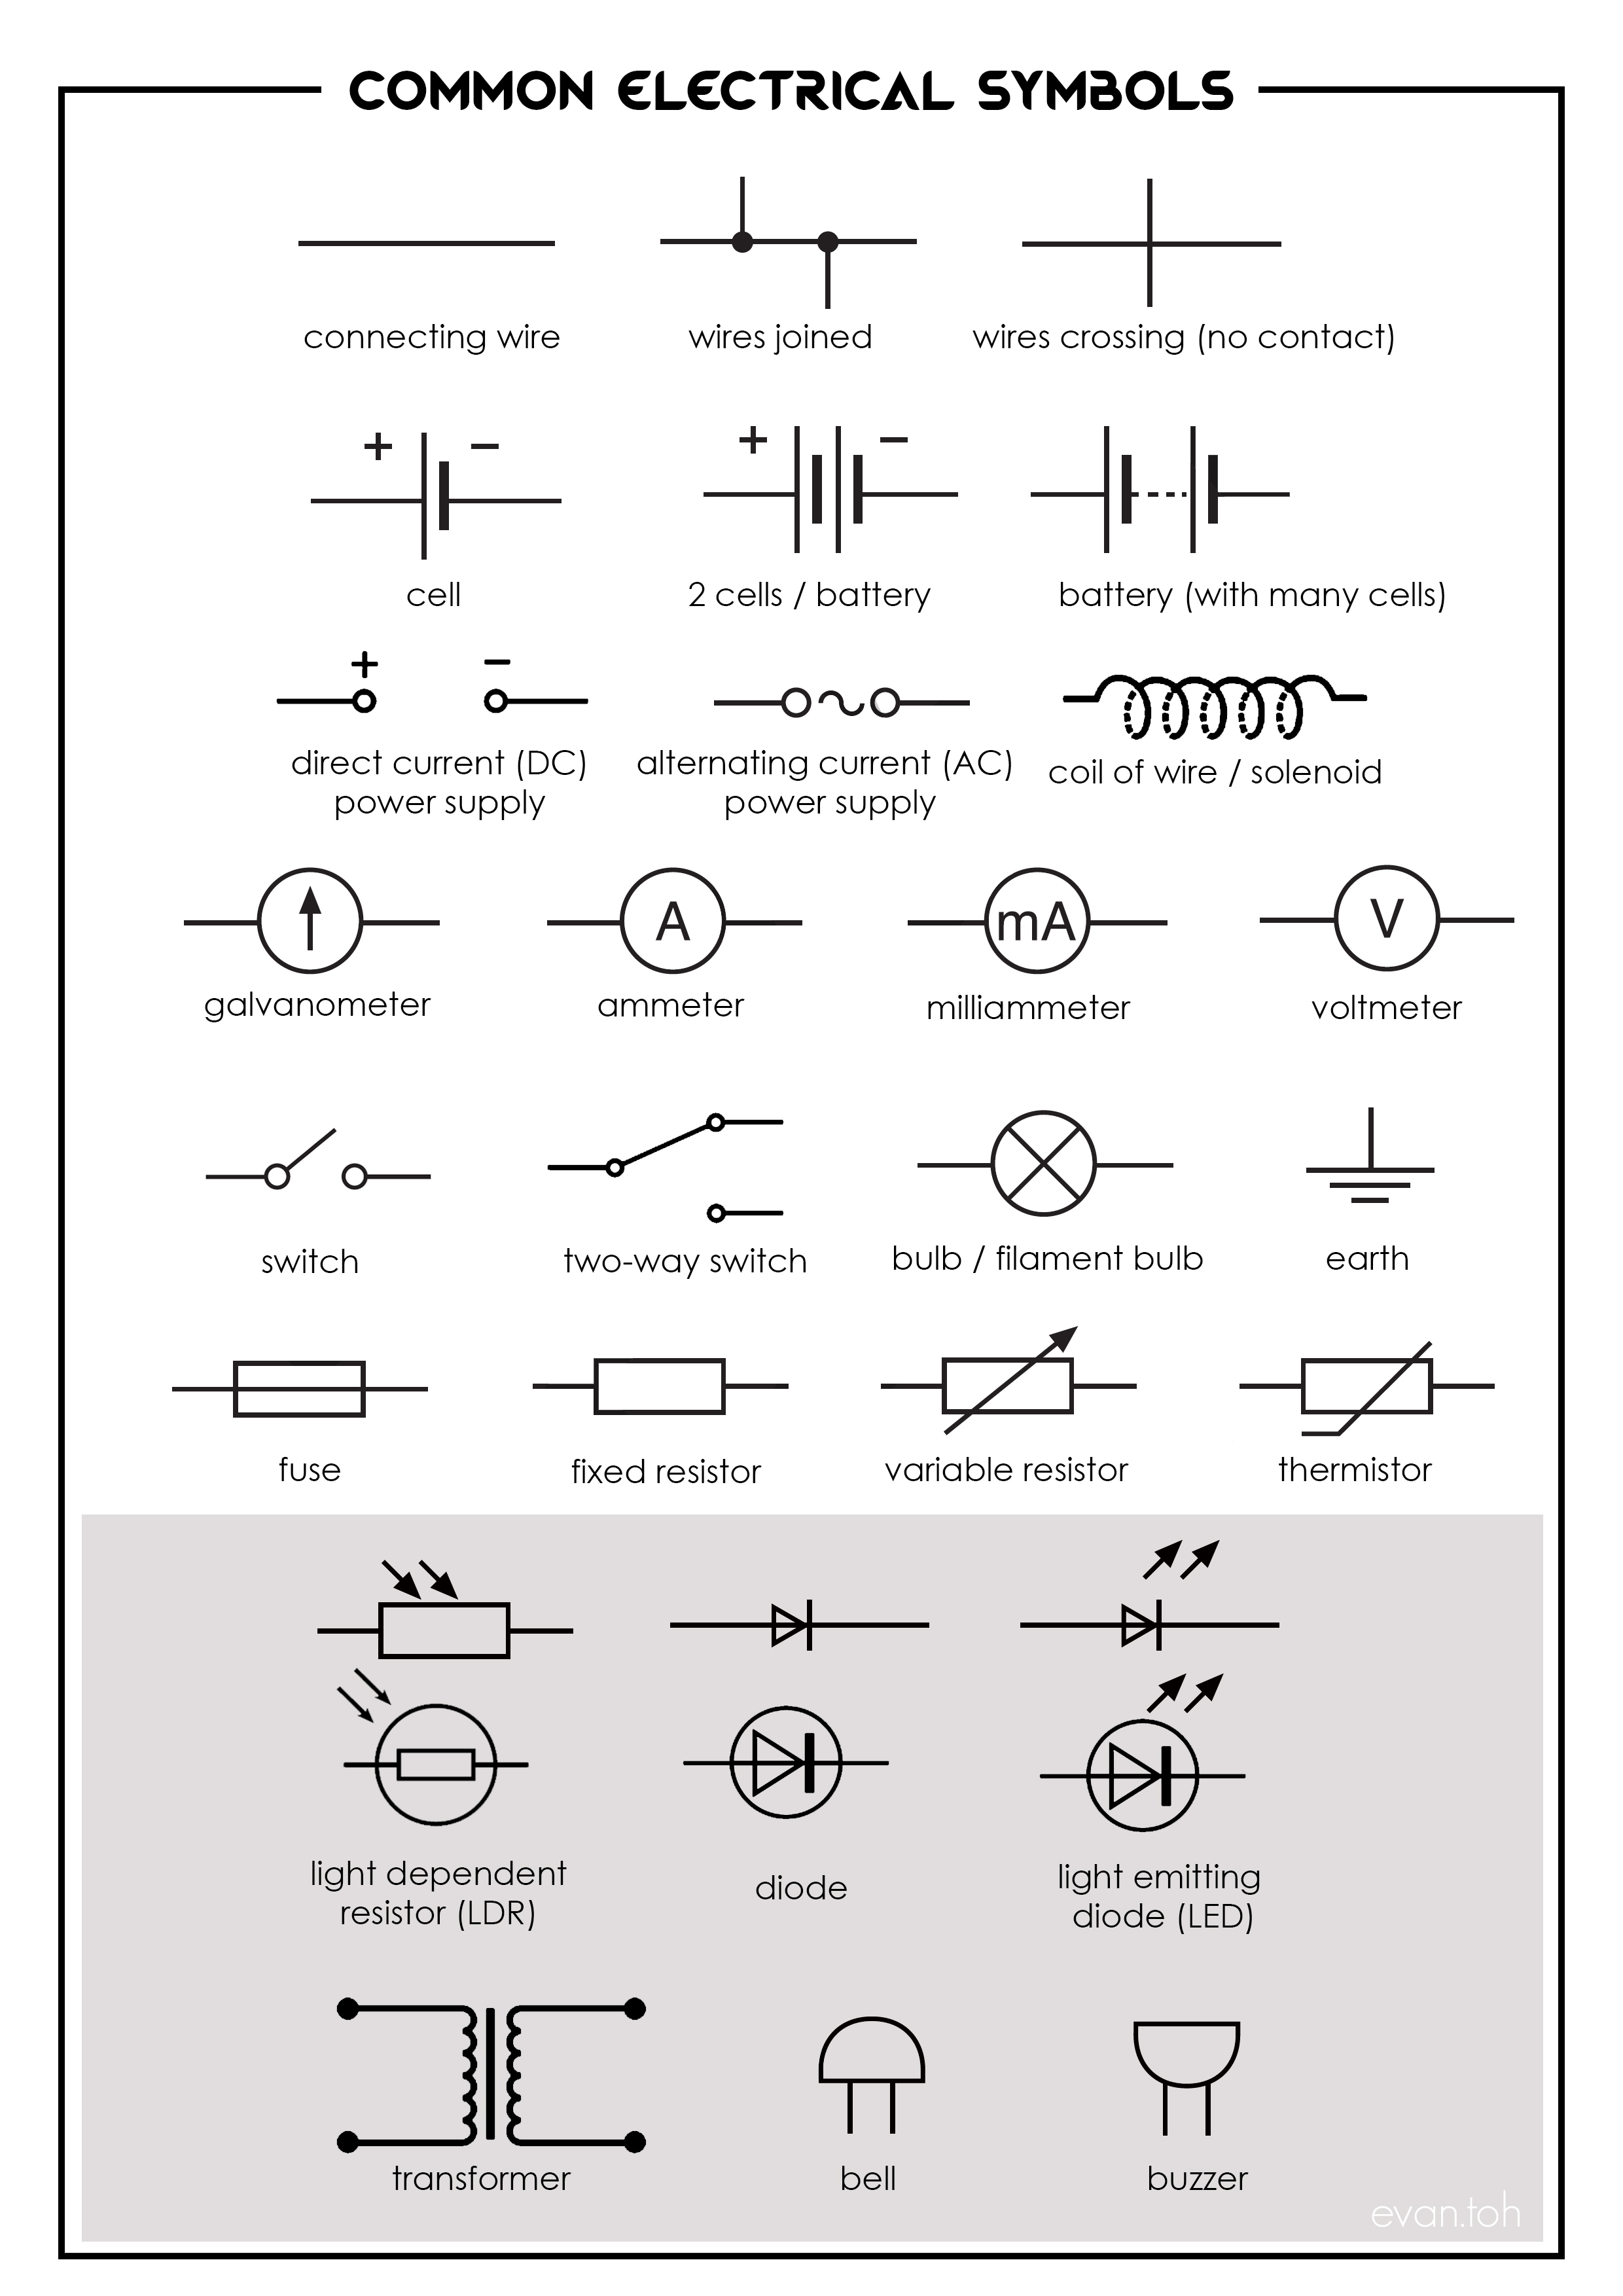 YY_8417] Electrical Symbols And Meanings Schematic WiringExxlu Icism Mecad Astic Ratag Ginou Gue45 Mohammedshrine Librar Wiring 101